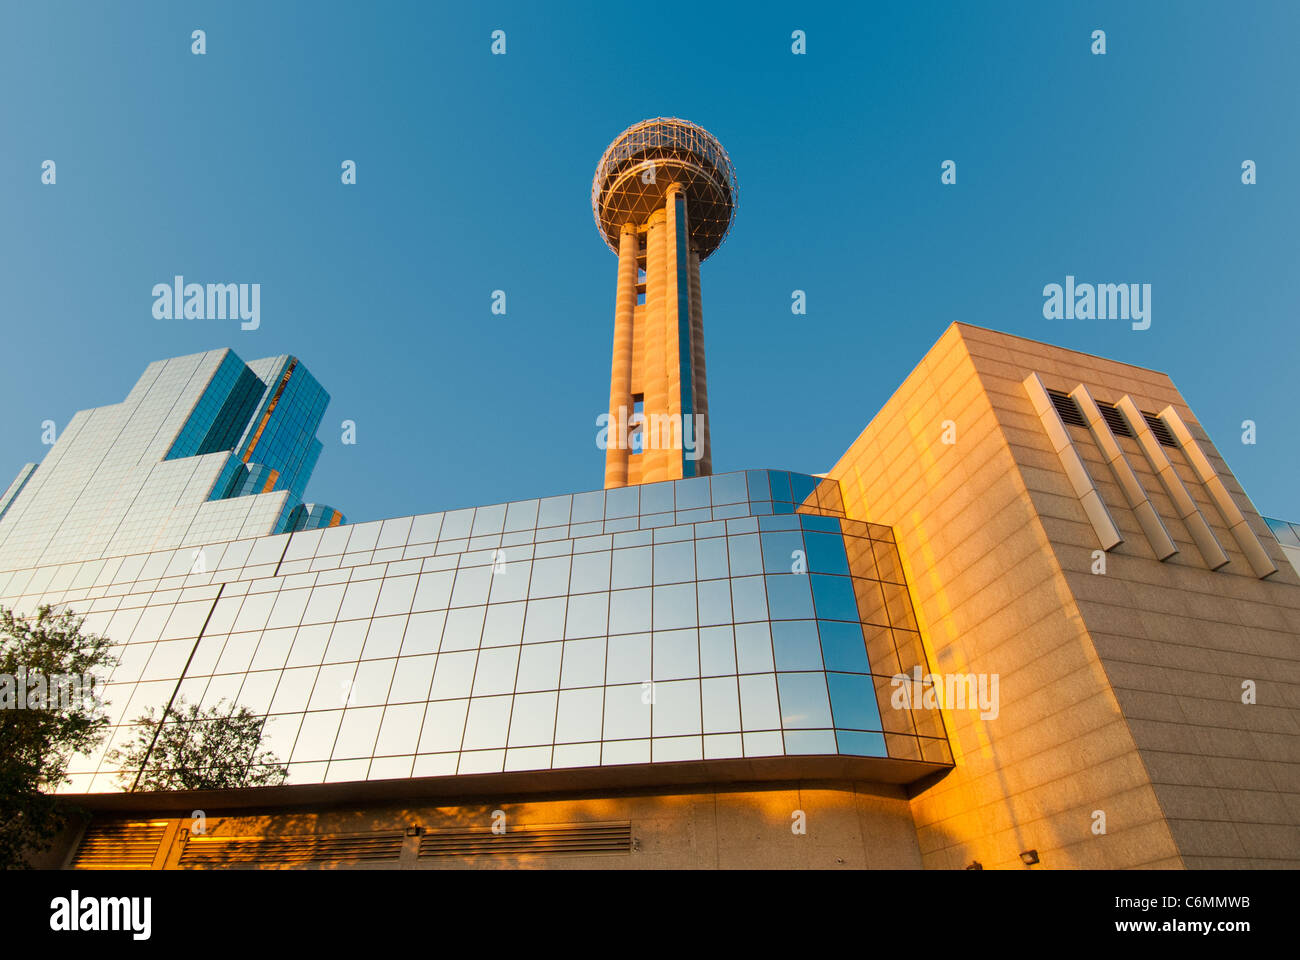 Reunion Tower with it's observation deck is a famous landmark of Dallas, Texas, USA - Stock Image